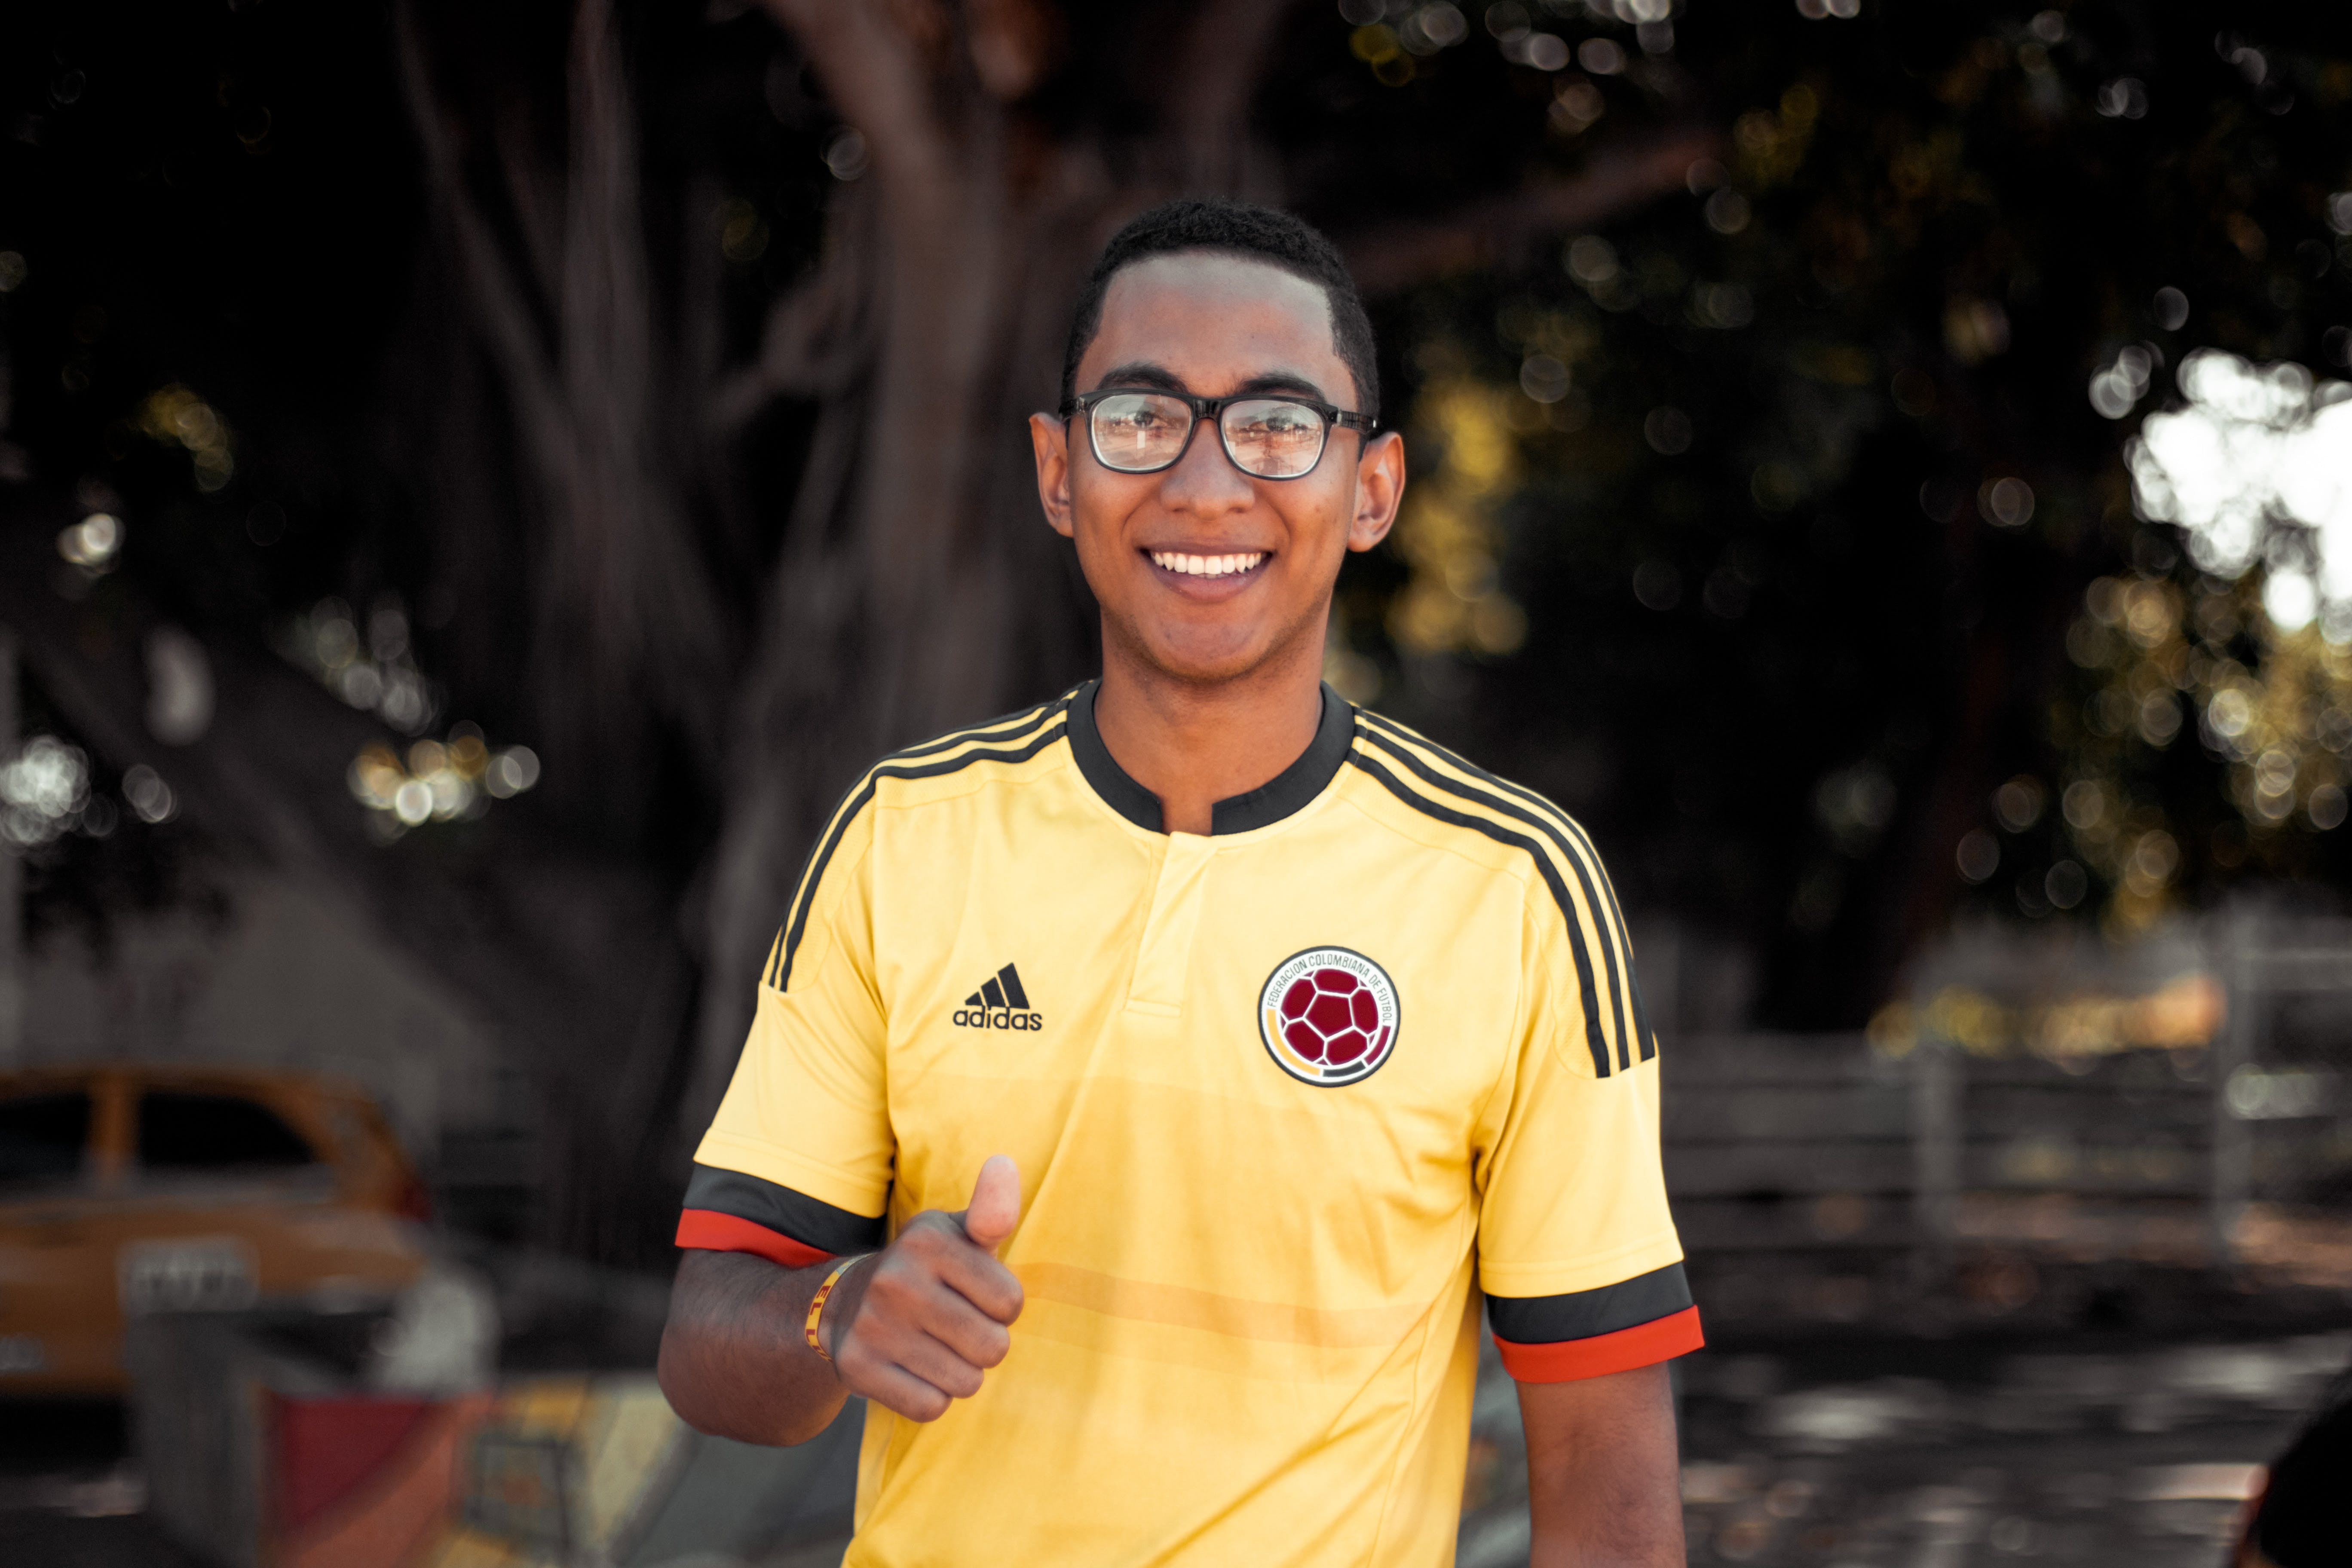 Man Wearing Yellow and Black Adidas Jersey Shirt